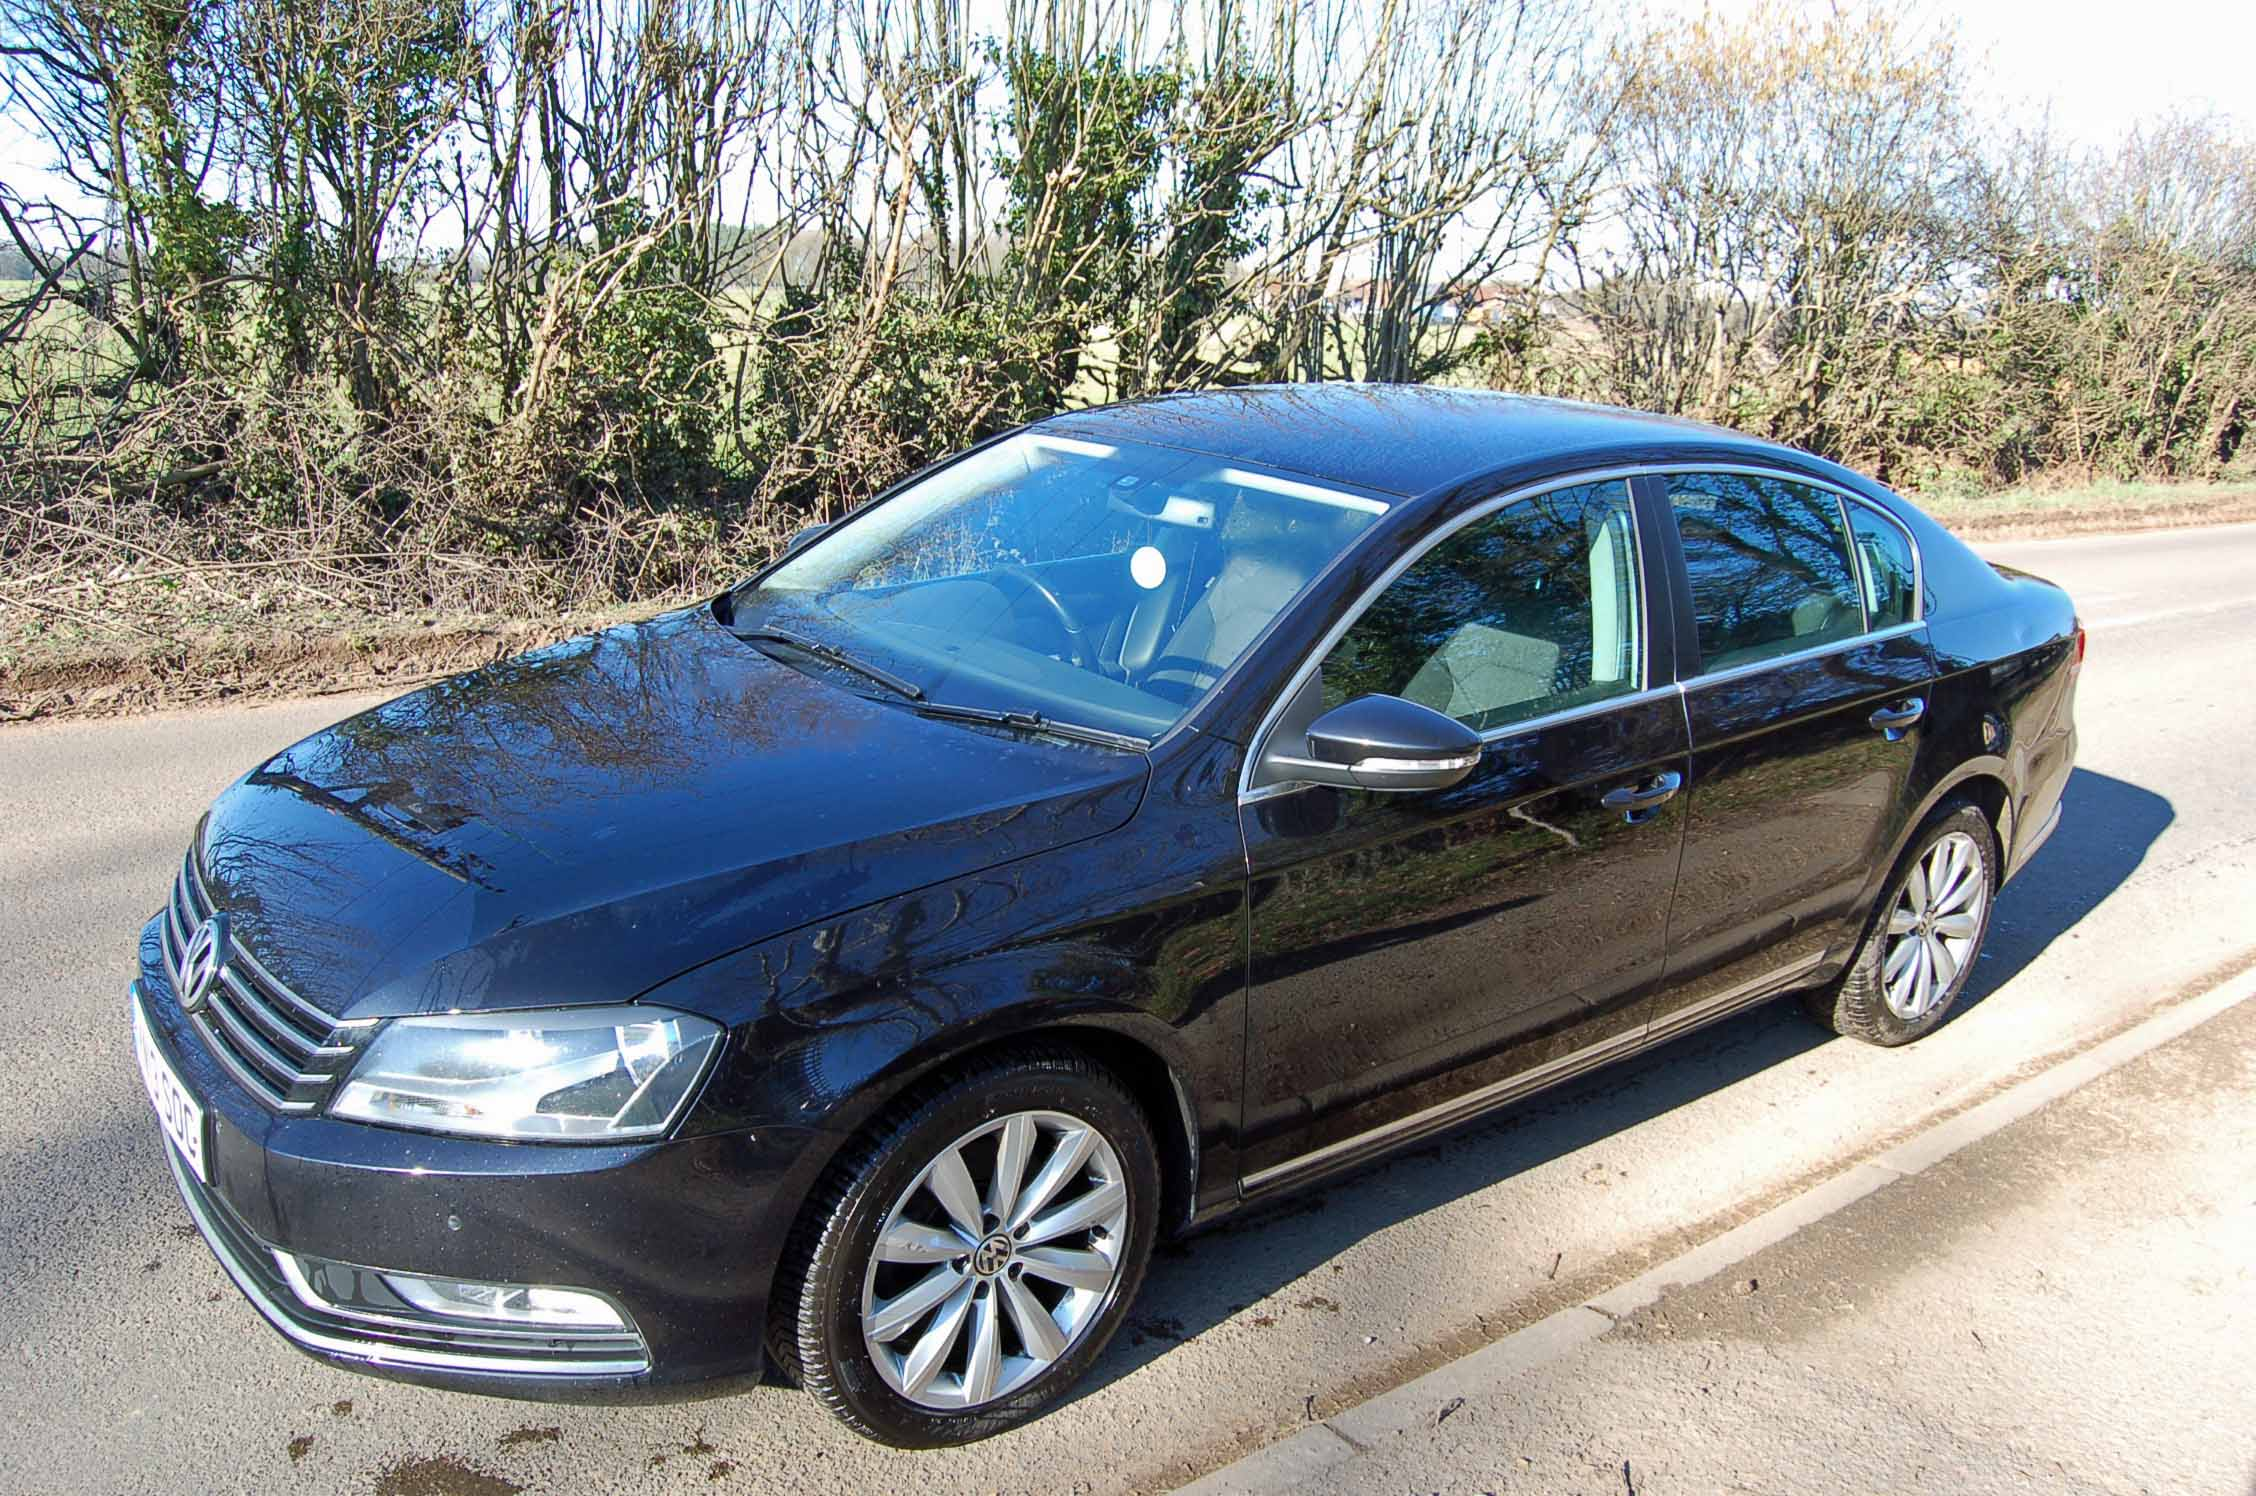 Lot 6 - A VOLKSWAGEN Passat Highline 2.0 TDI Diesel Saloon, Registration No. VN13 SOC (2013), First